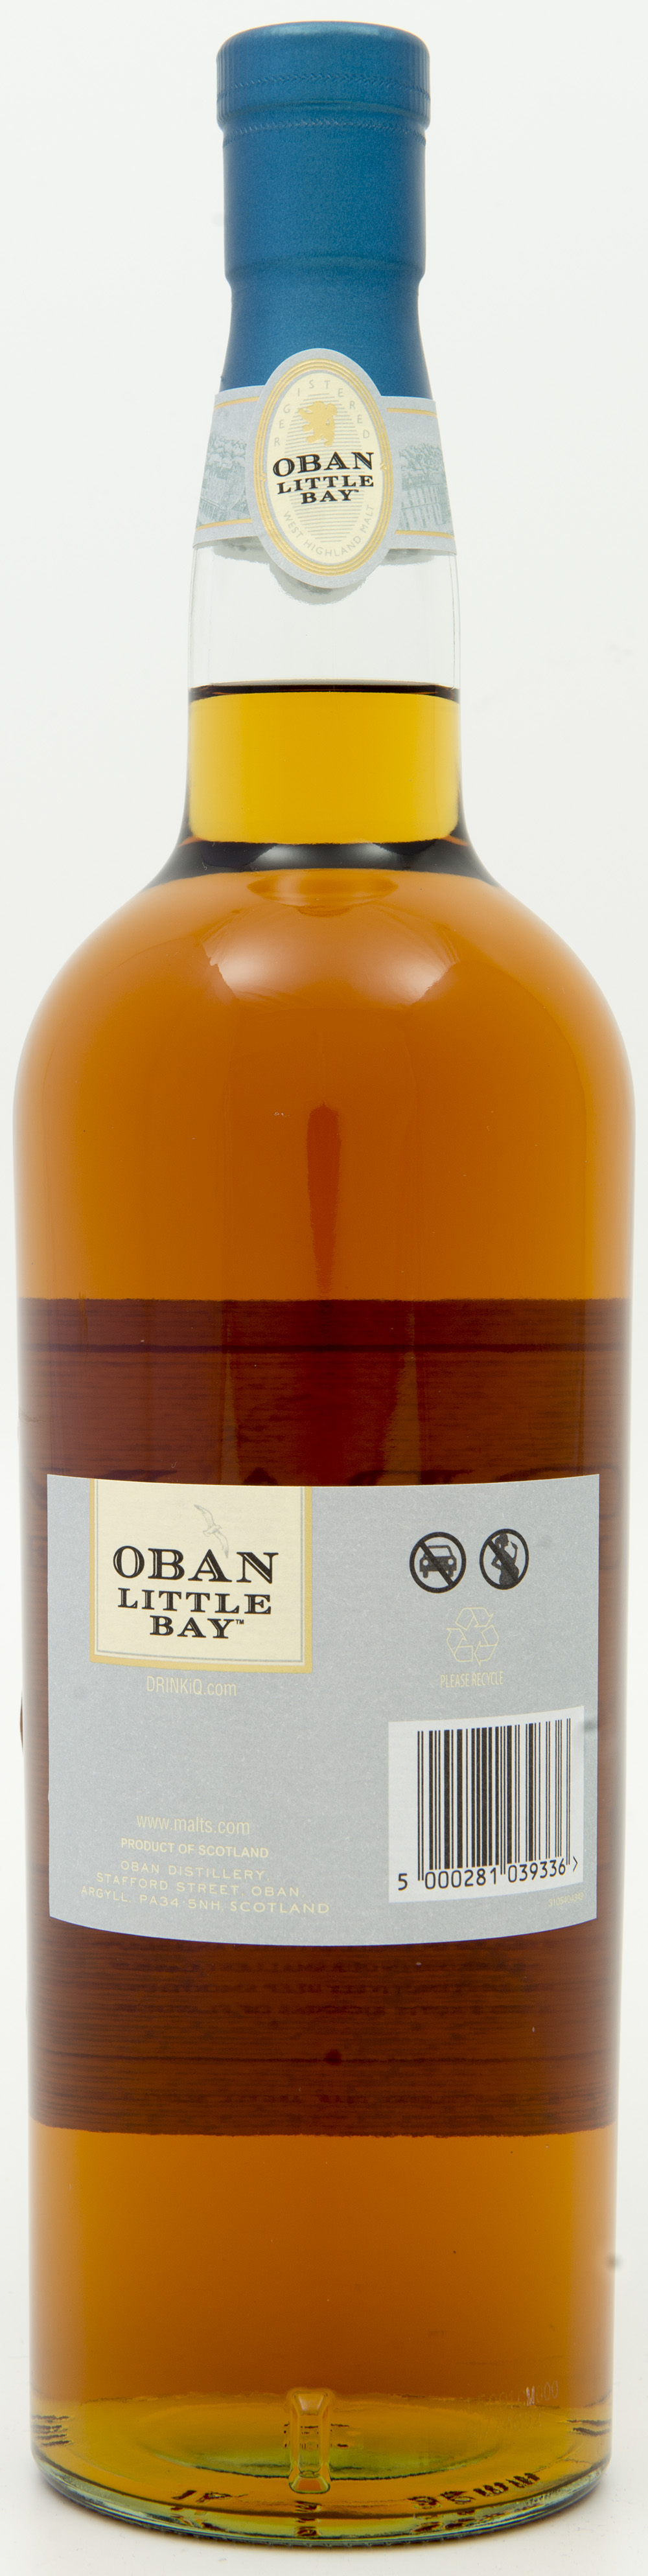 Billede: DSC_8213 - Oban Little Bay - bottle back.jpg